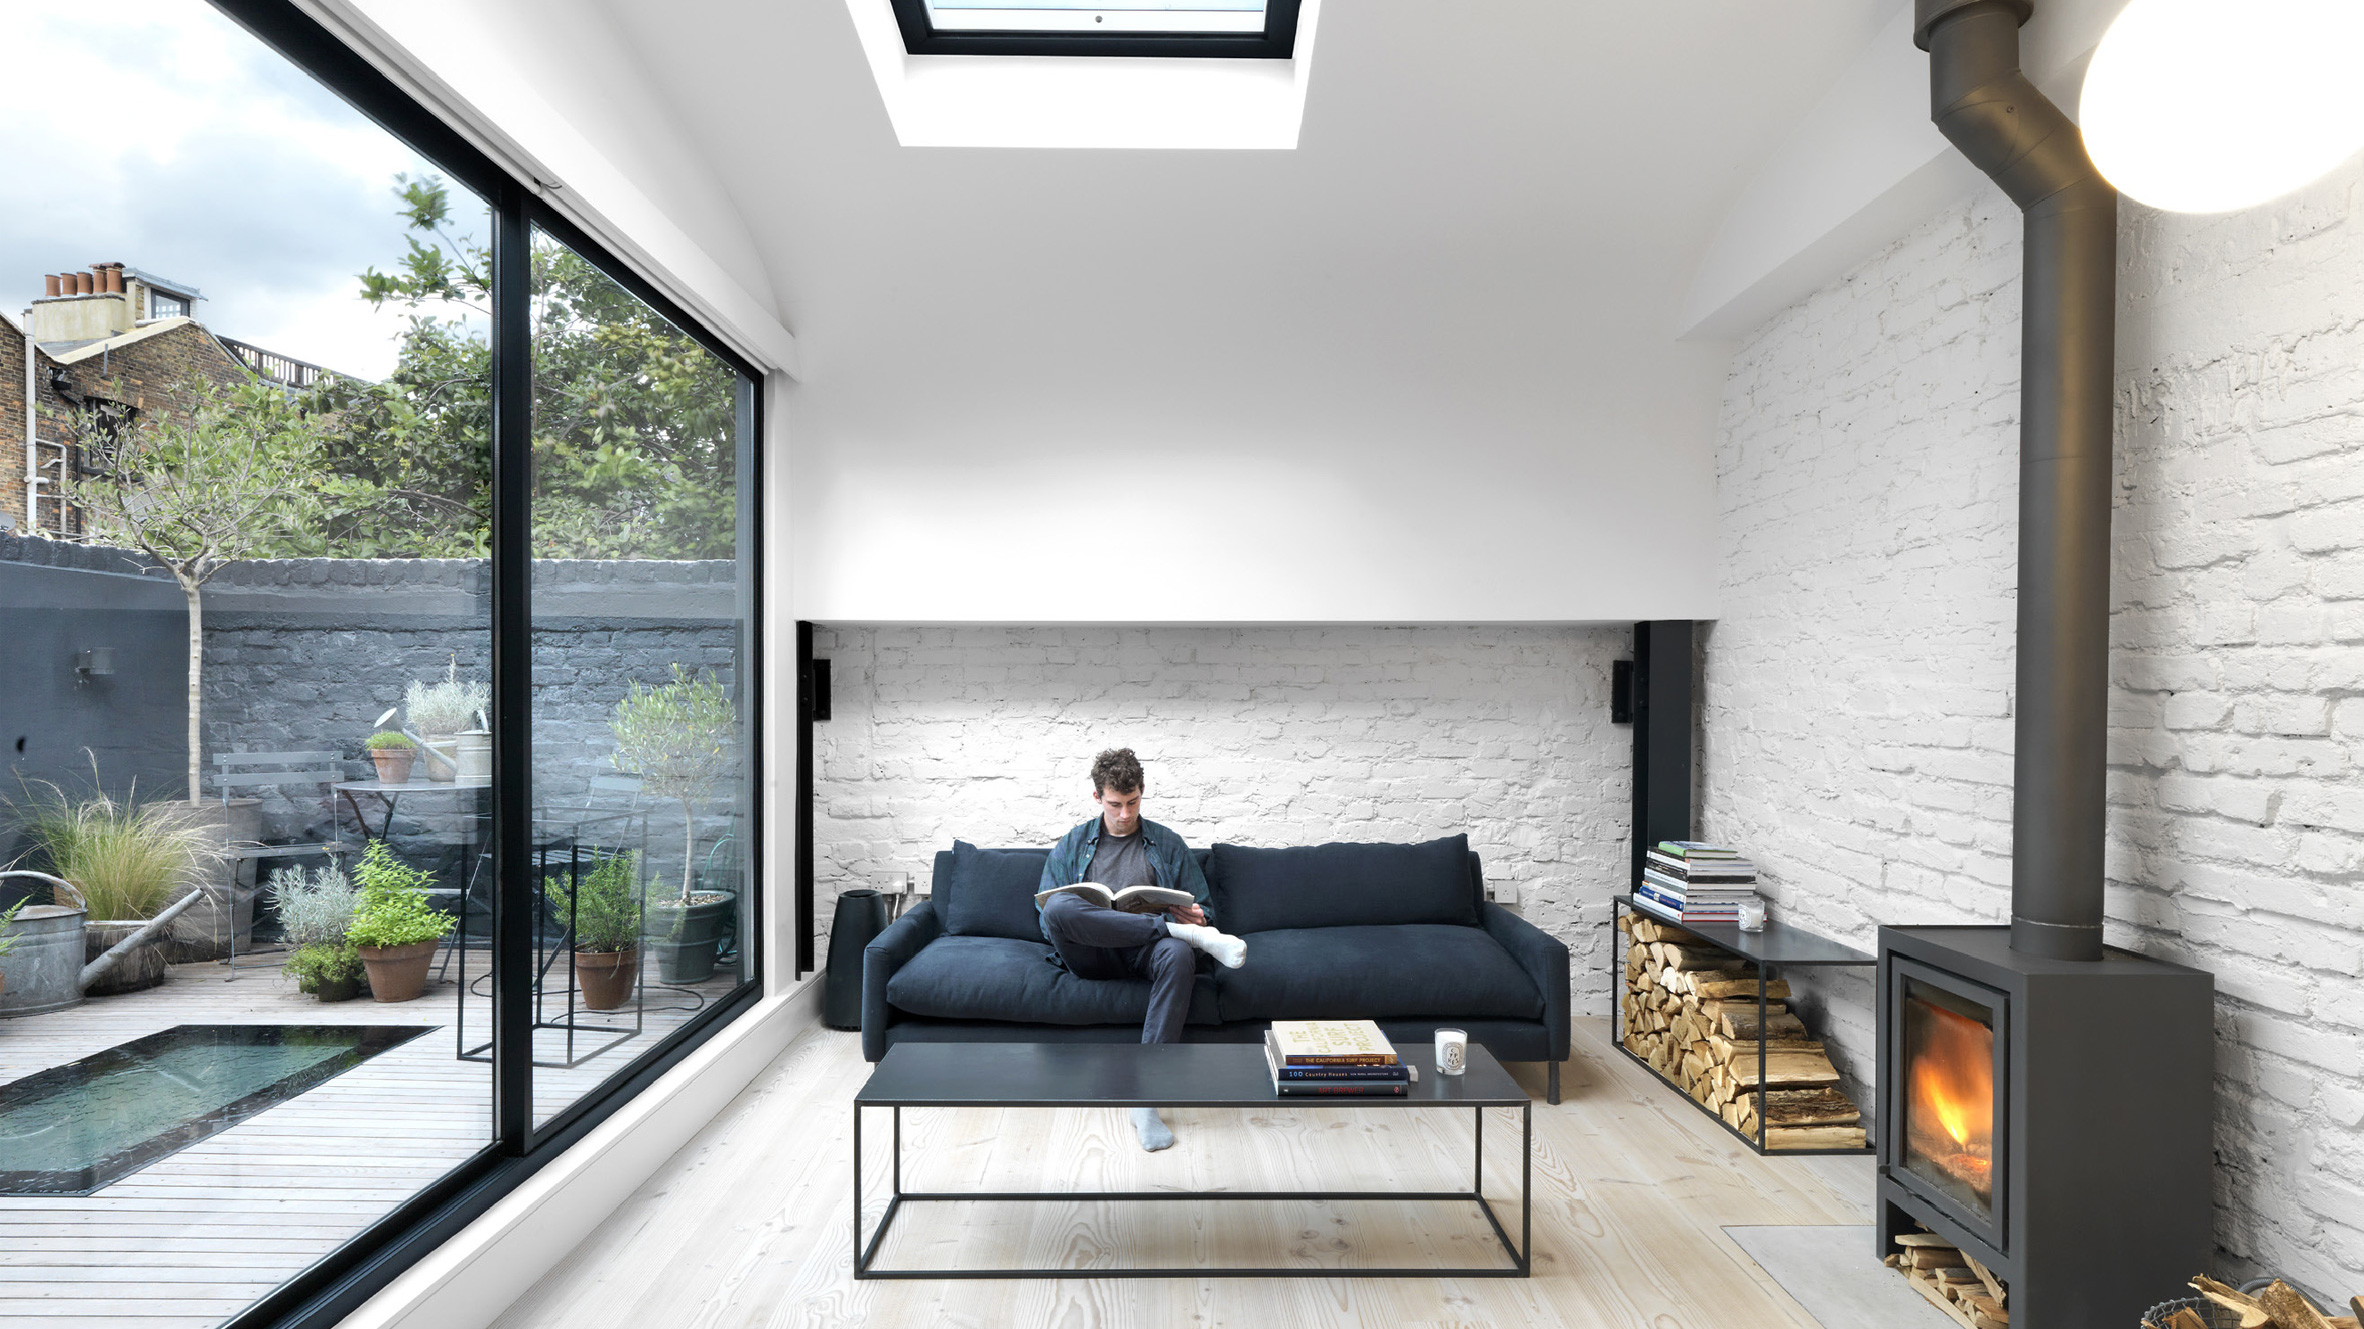 Threefold architects updates london mews house with for Interior designs london